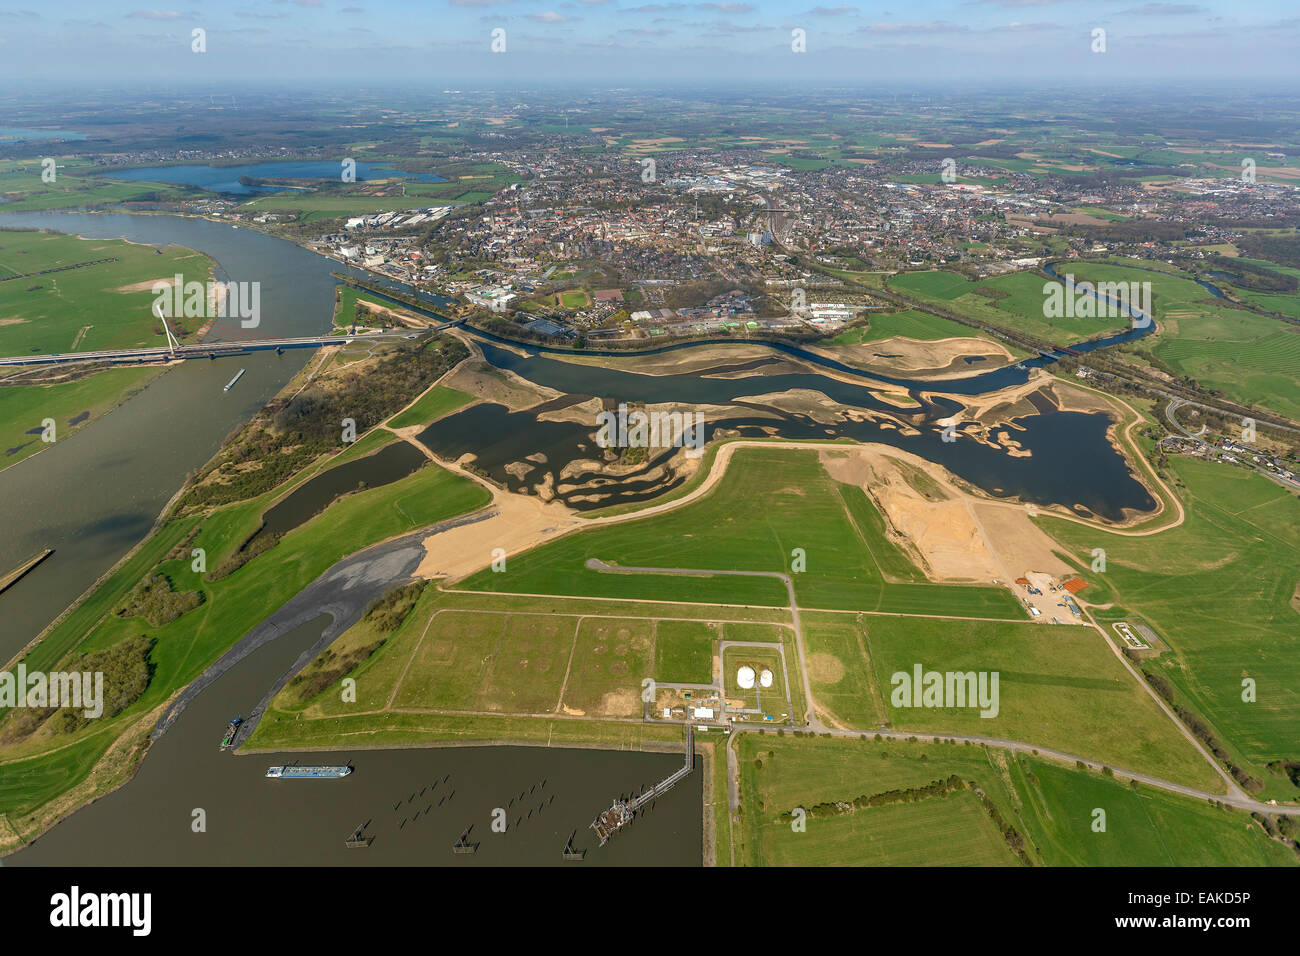 Reconstruction of the Lippe River joining the Rhine River, port of Wesel, restoration, aerial view, Wesel - Stock Image